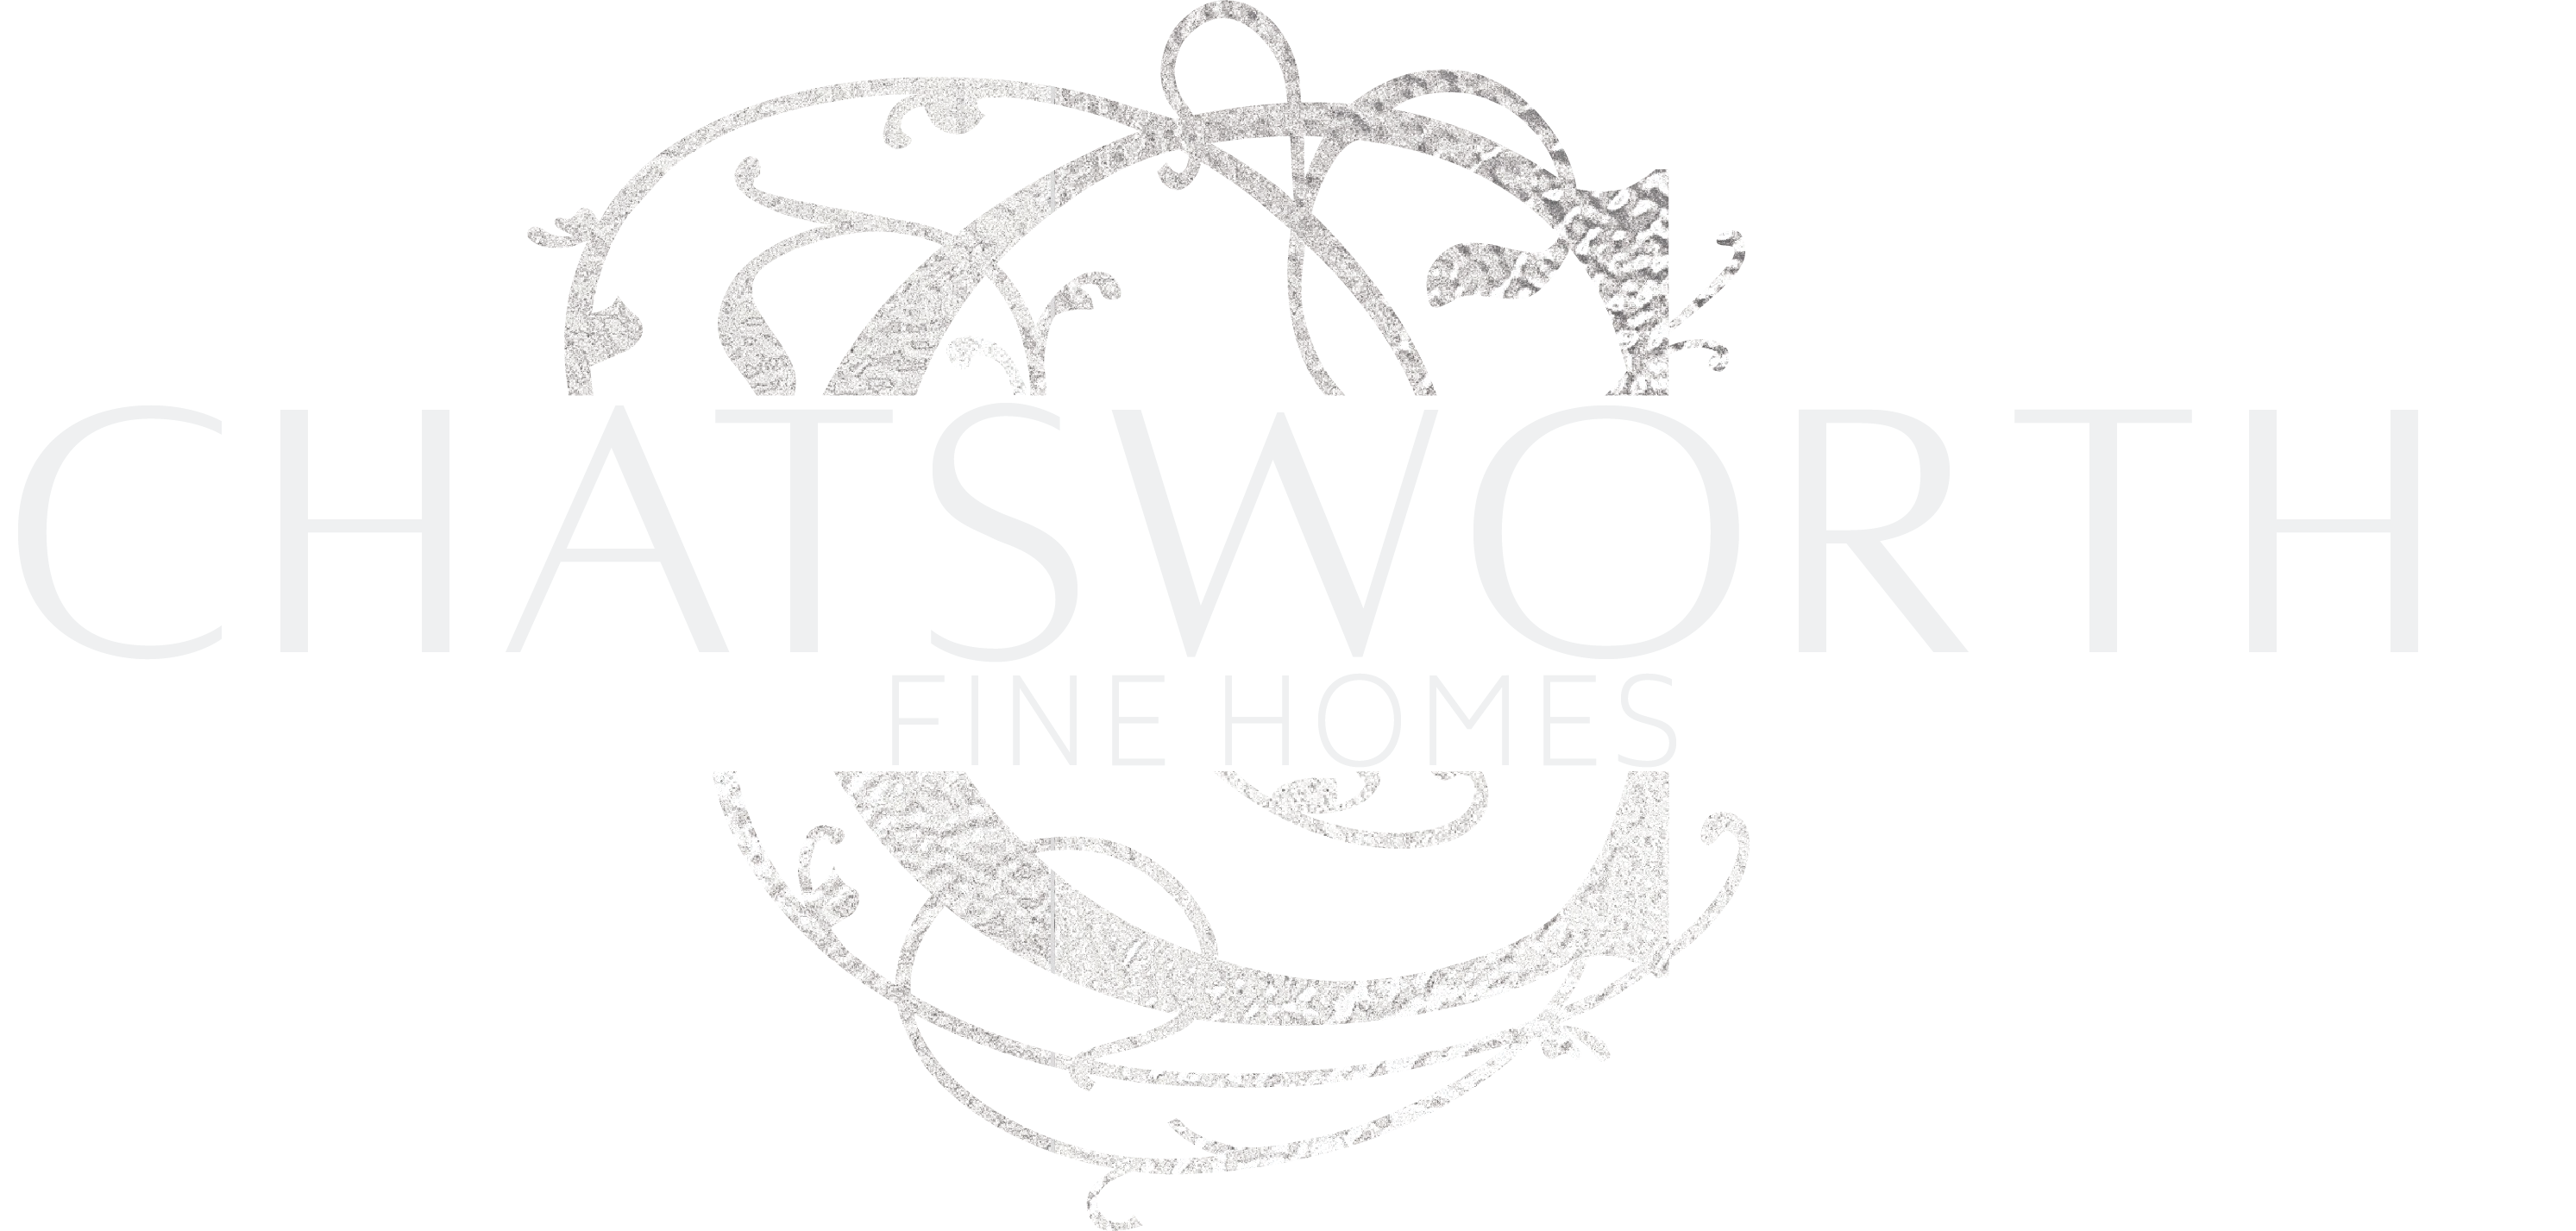 Chatsworth Fine Homes logo